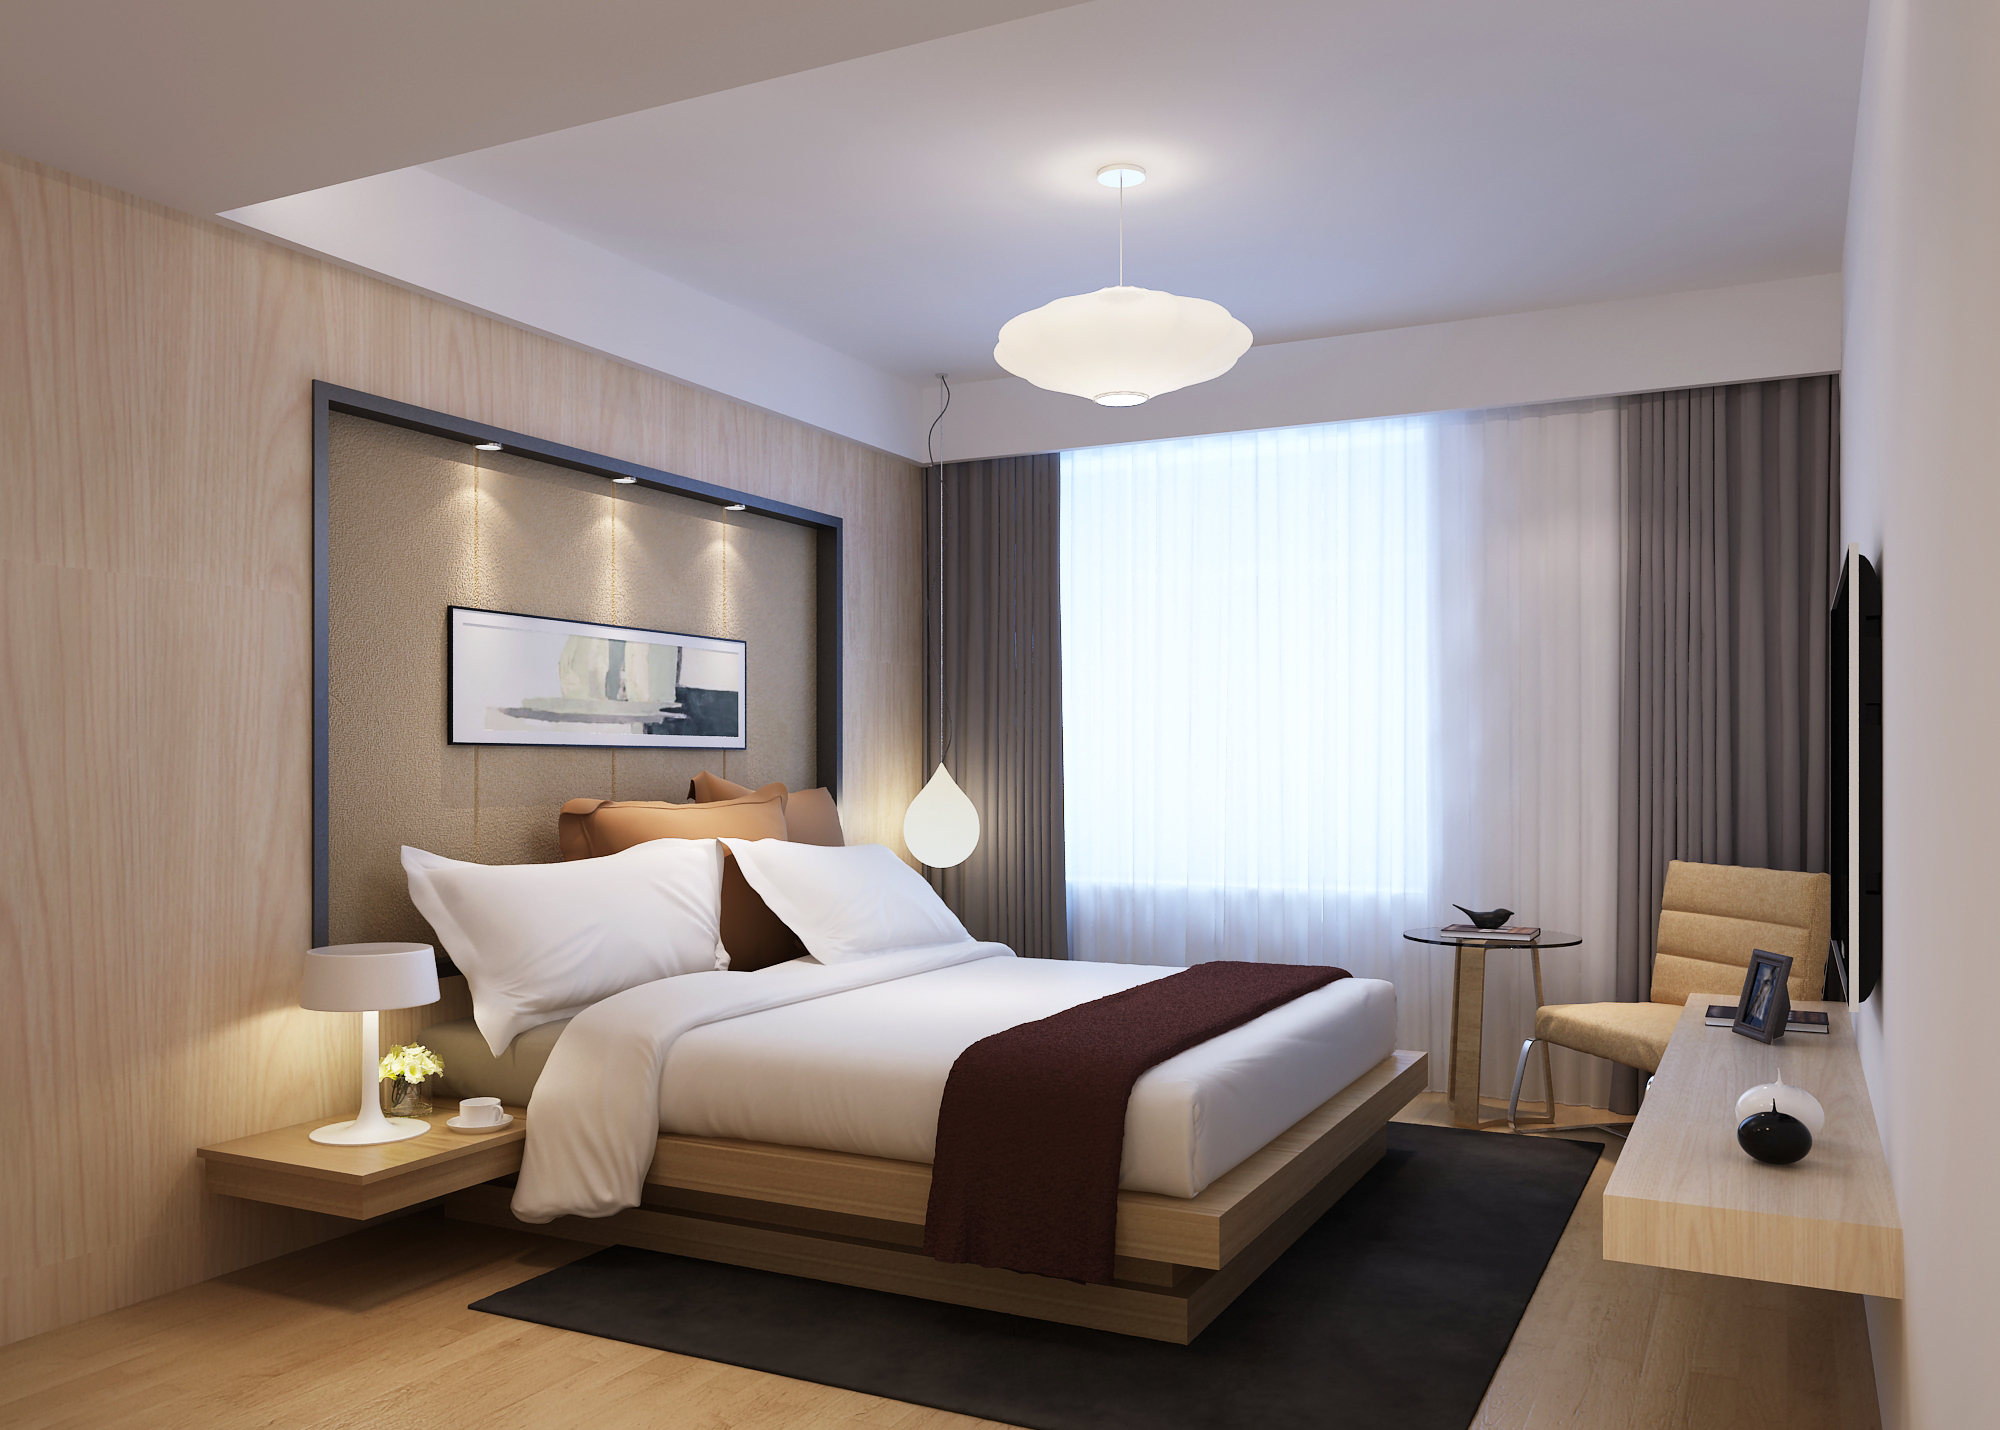 Modern bedroom 3d model max - Images of modern bedrooms ...